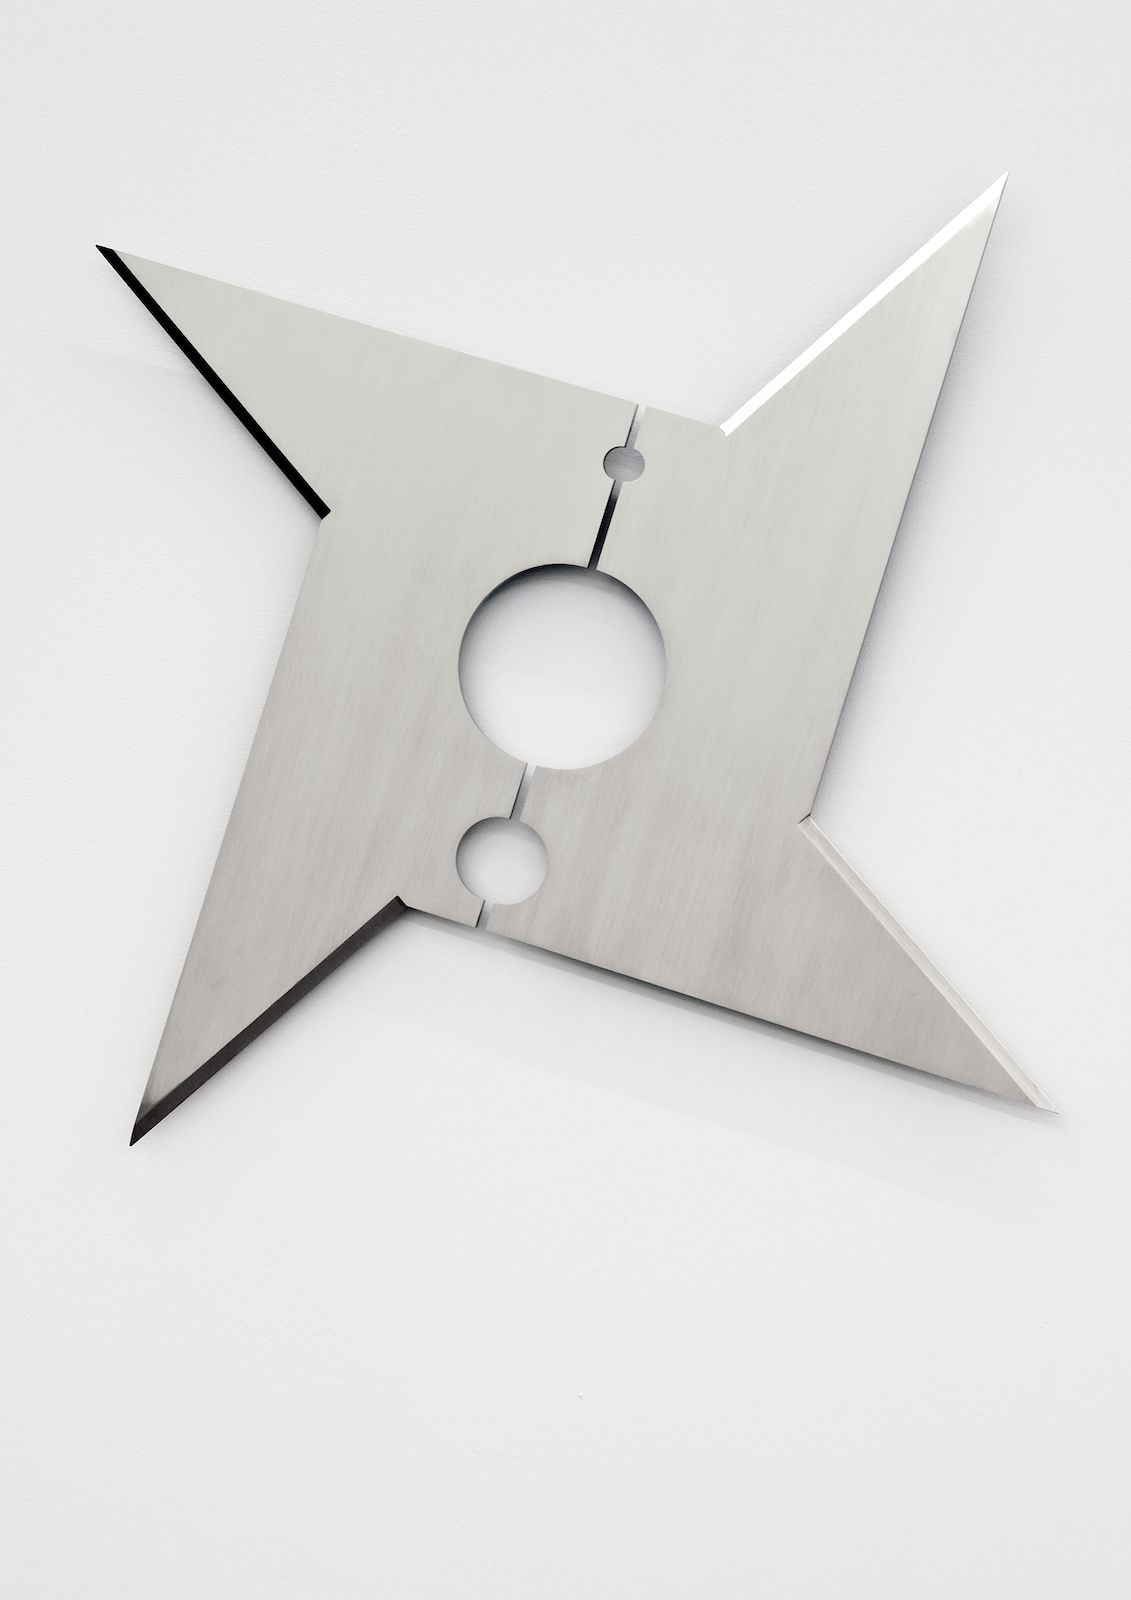 Cutting Cunt, 2010, laser cut stainless steel, 75 x 52 x 2 cm